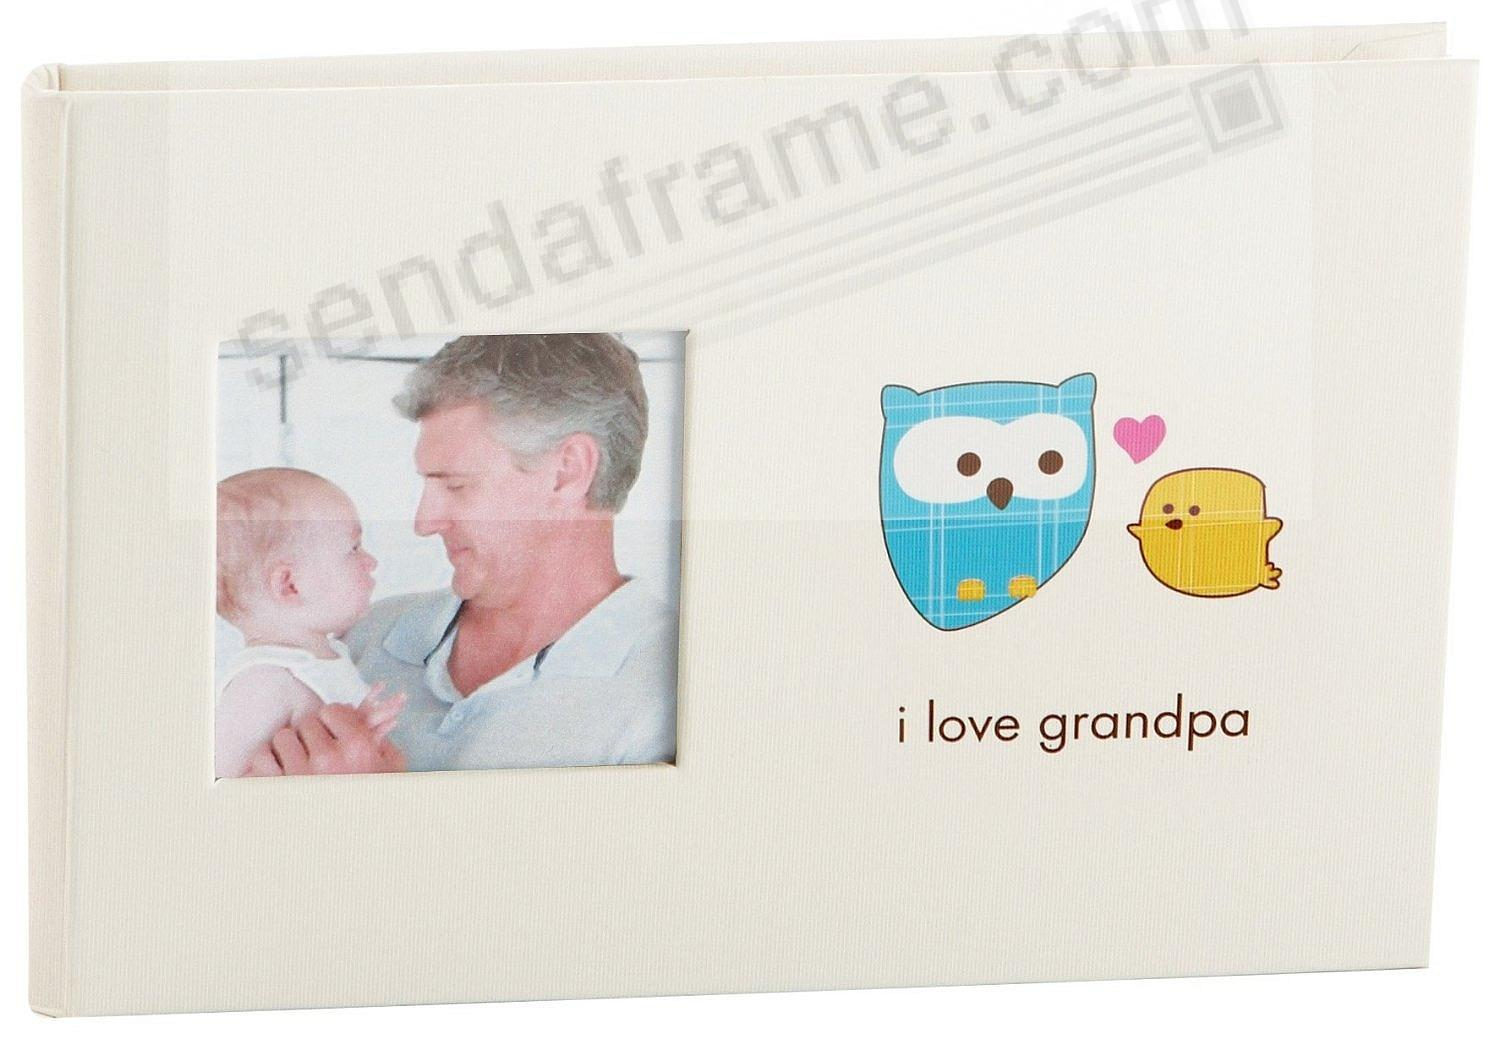 Bragbook I Love Grandpa by Babyprints - Picture Frames, Photo Albums ...